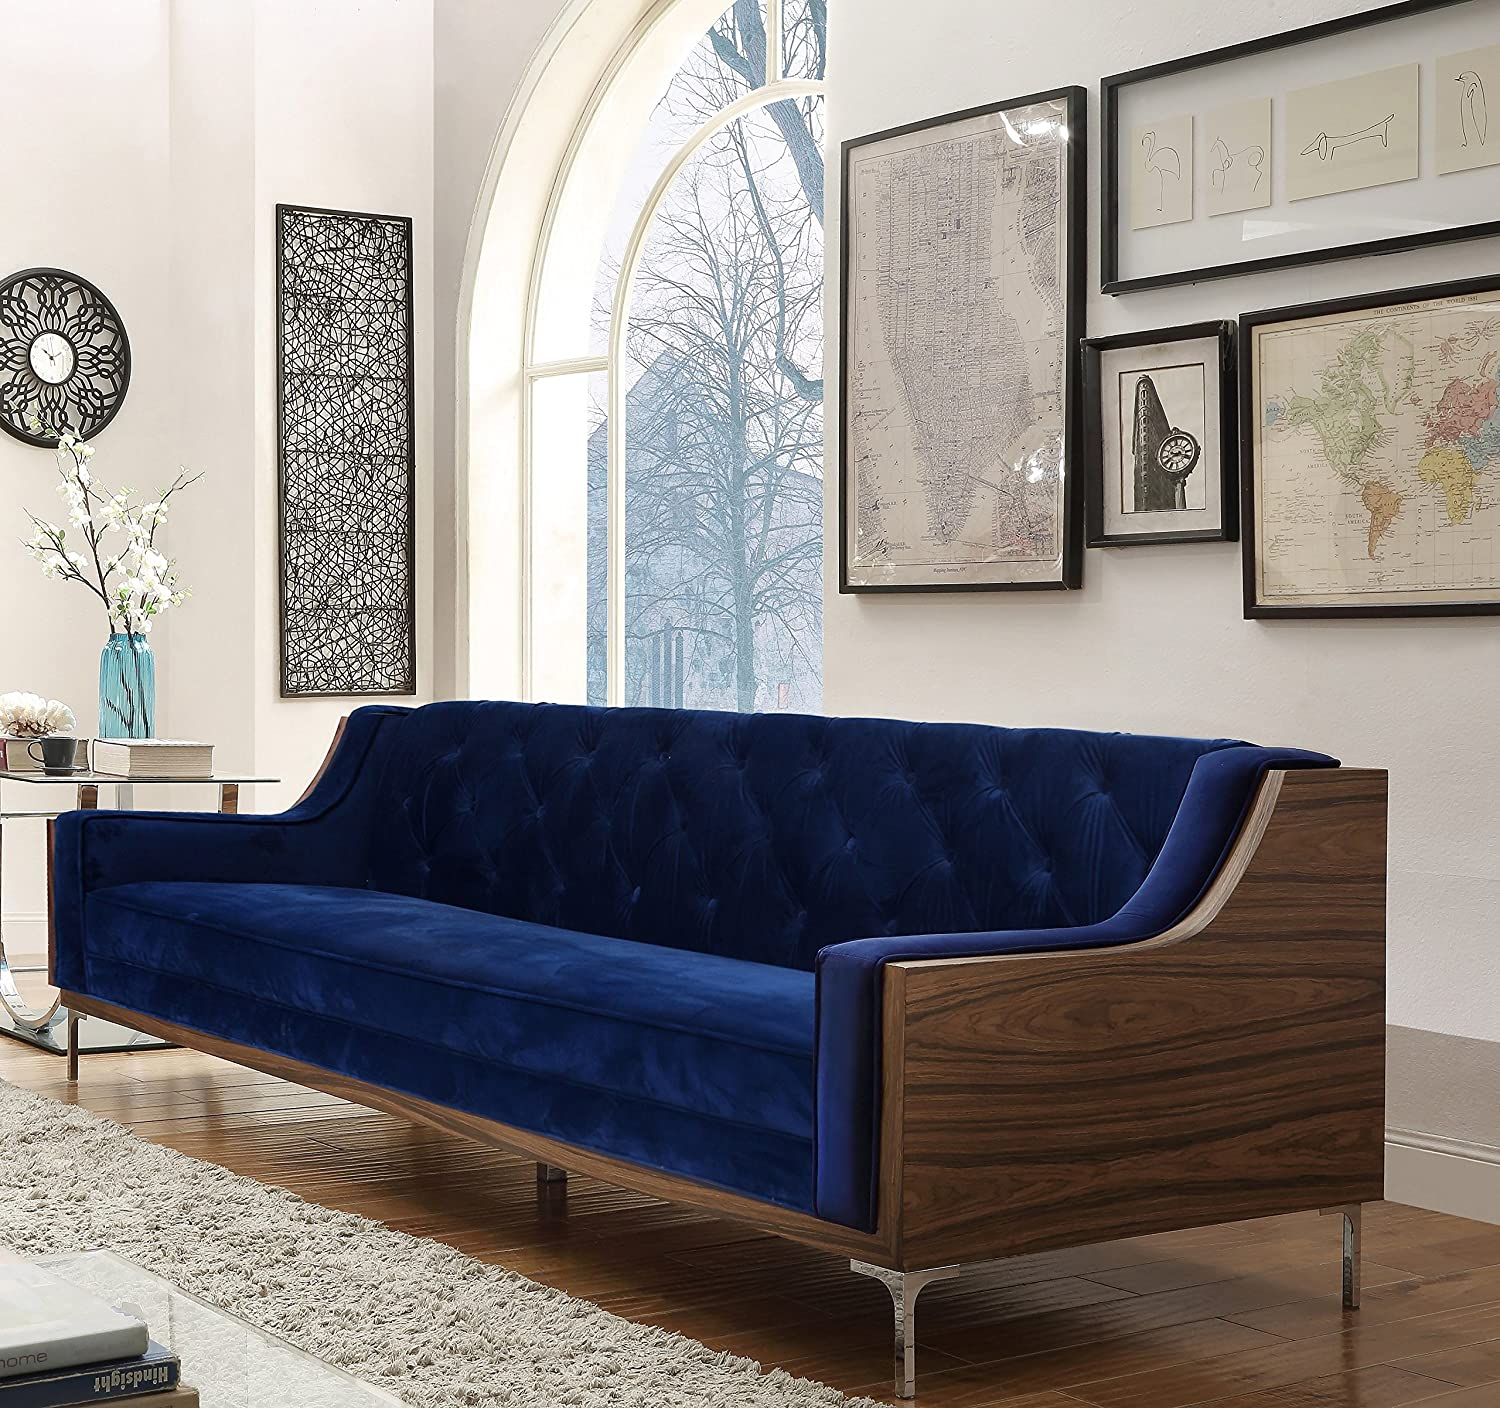 Phenomenal Iconic Home Clark Modern Contemporary Navy Blue Velvet Tufted Swoop Arm Sofa With Walnut Finish Silvertone Chrome Legs Download Free Architecture Designs Photstoregrimeyleaguecom